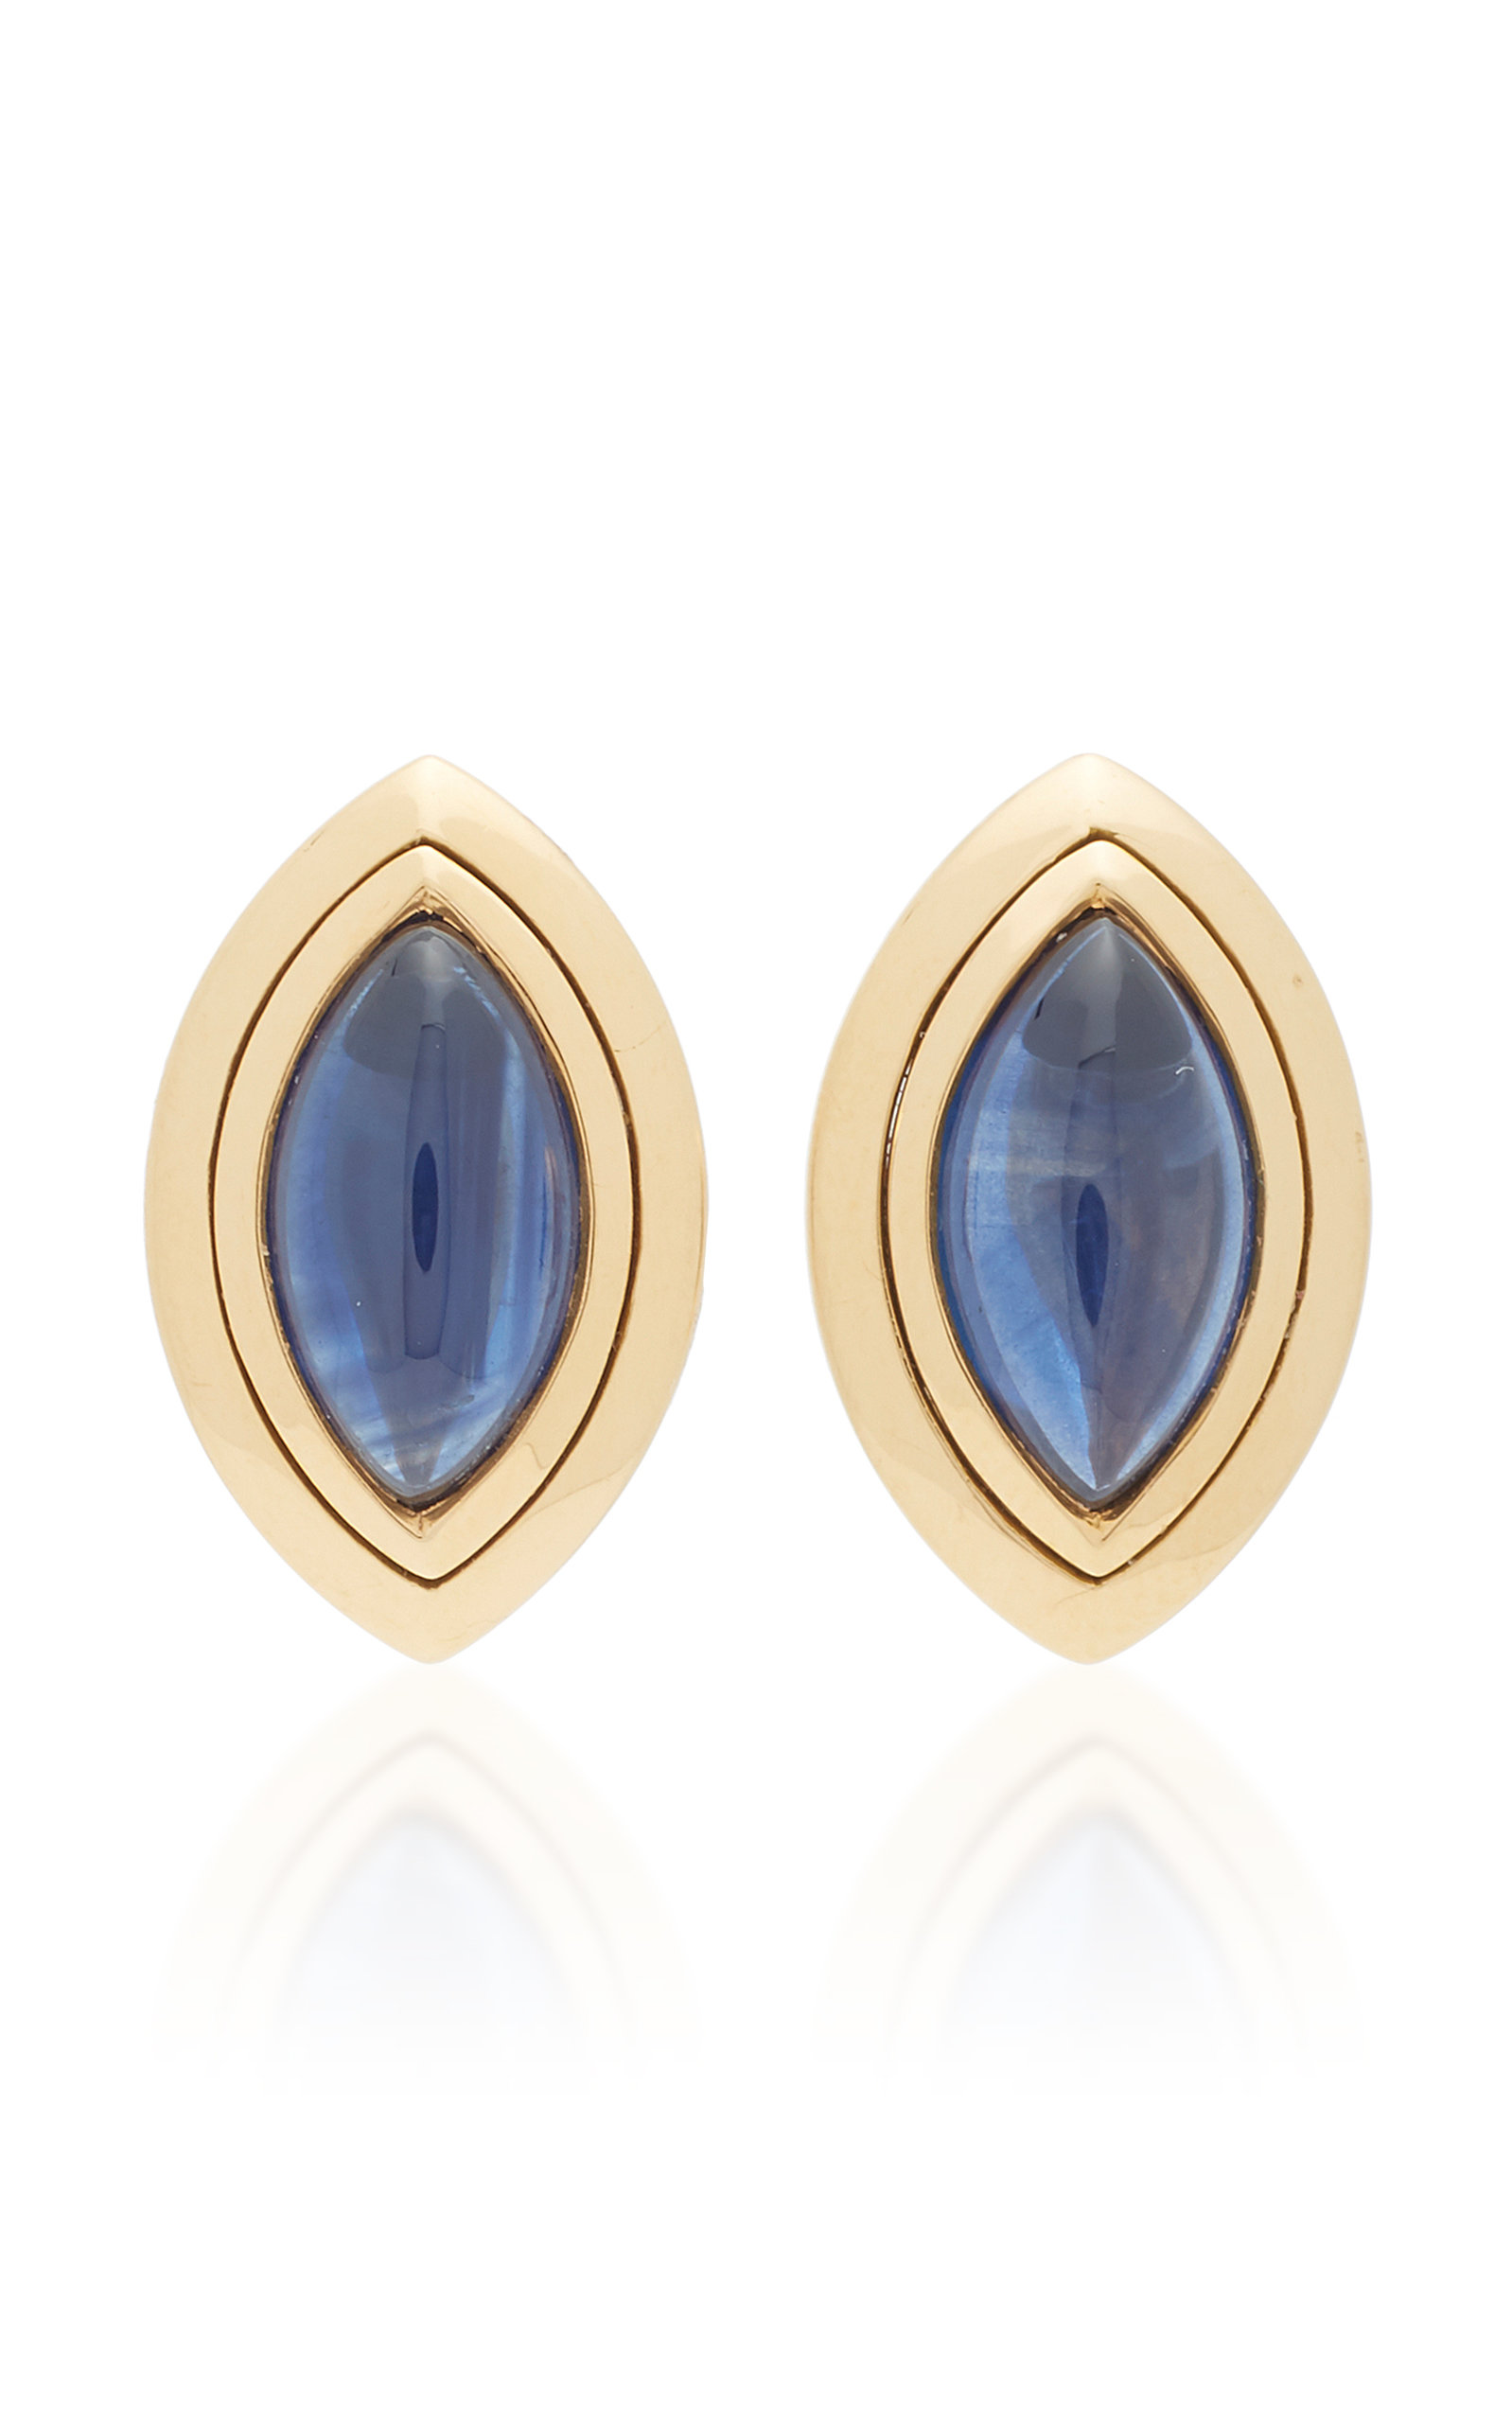 MAHNAZ COLLECTION ONE-OF-A-KIND 18K GOLD AND SAPPHIRE STUD EARRINGS BY HEMMERLE C. 1990.